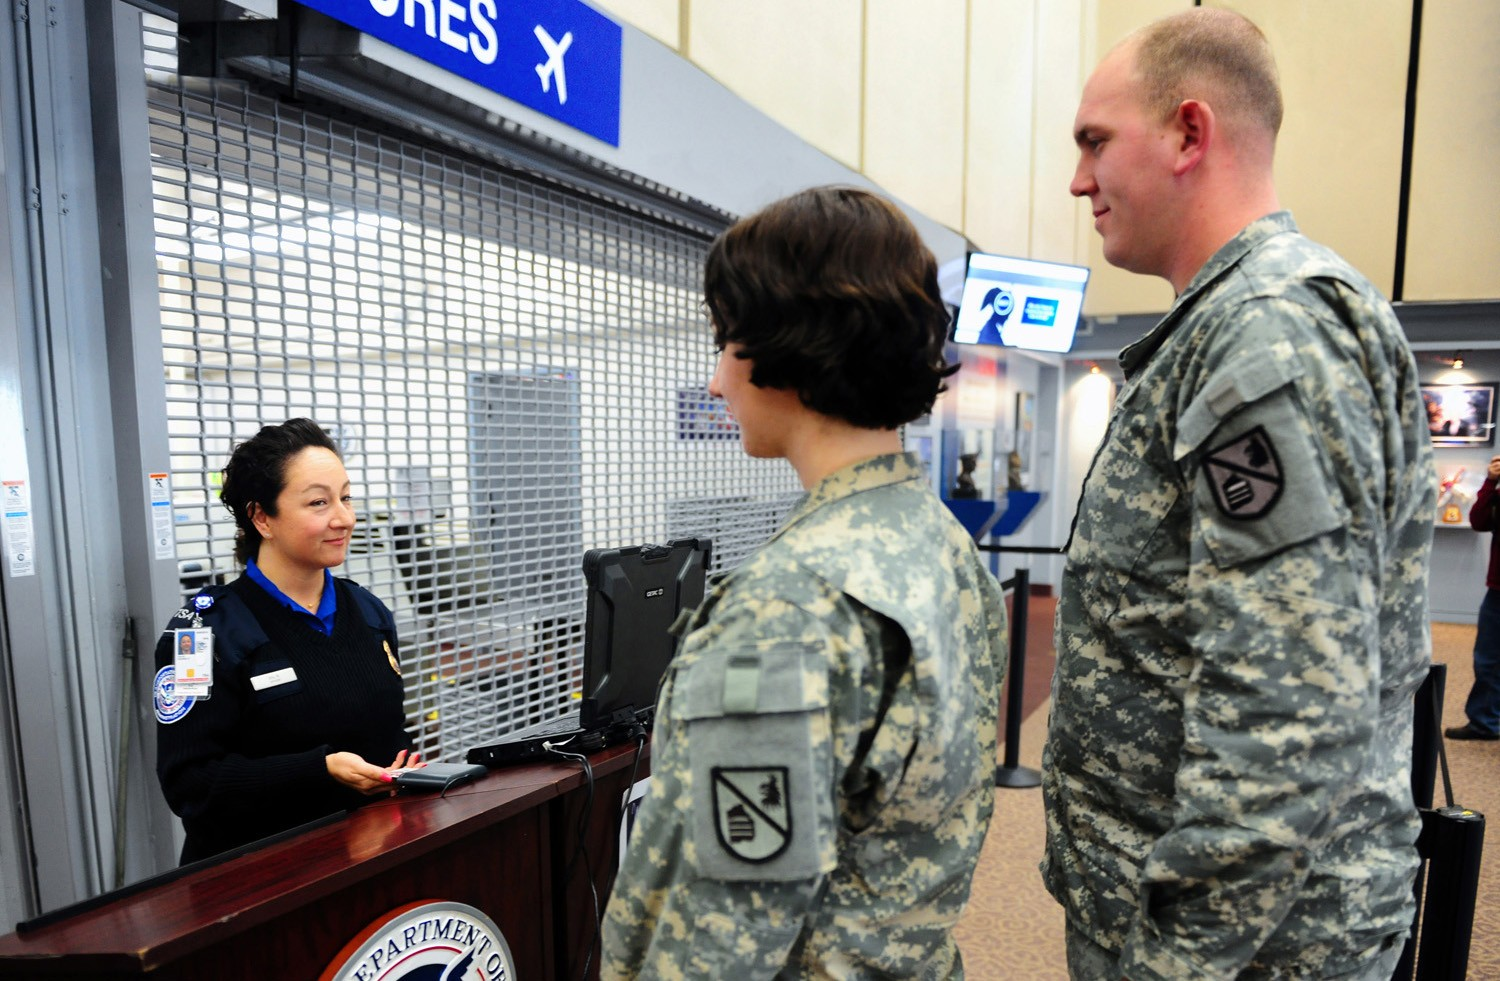 new law will expedite soldiers thru airport security - Transportation Security Officer